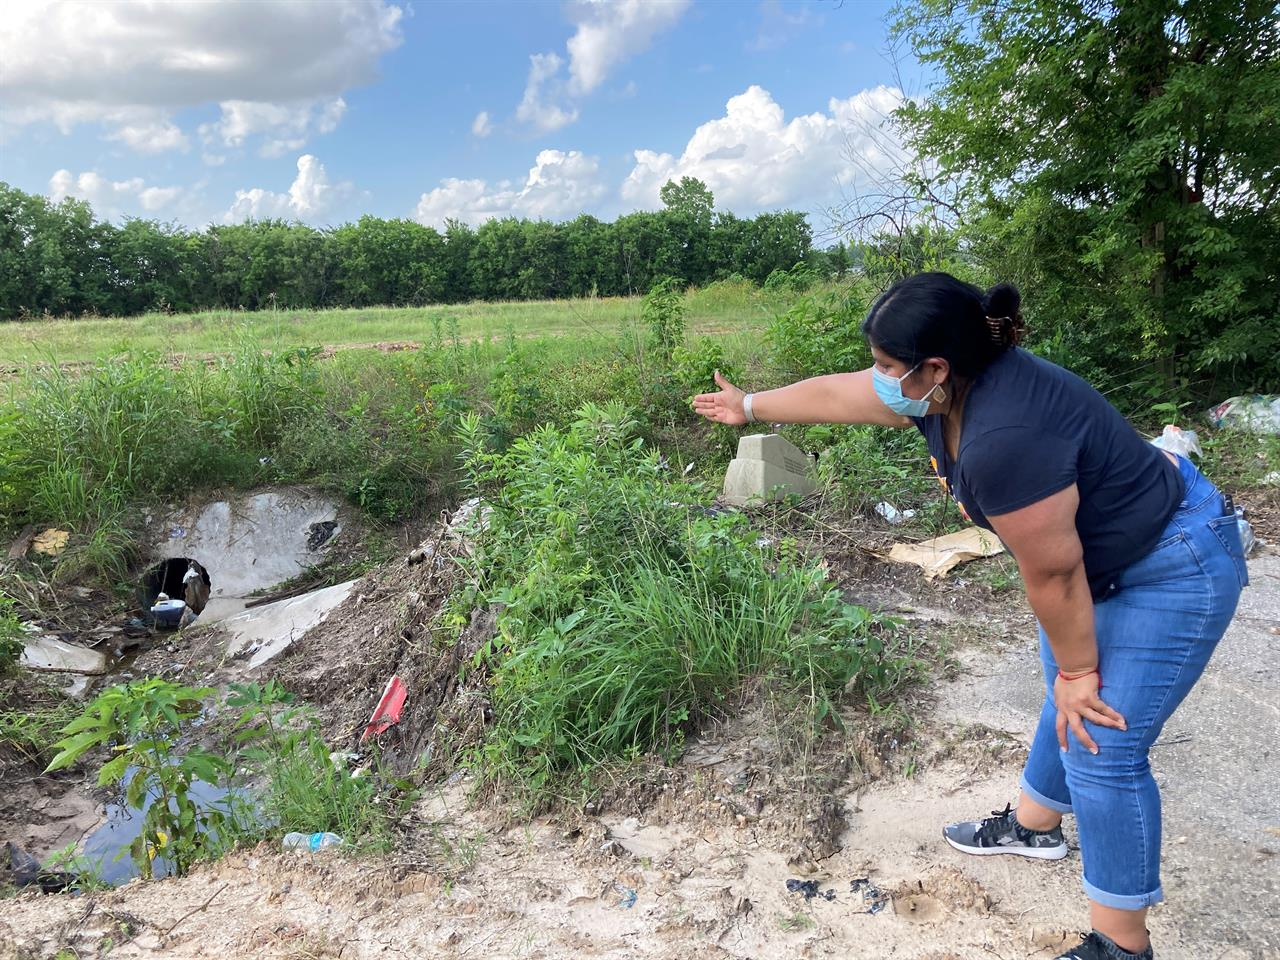 Shirley Ronquillo, a Houston area community activist,points to an open drainage ditch that is blocked by debris and trash on May 27, 2021, in Houston. The ditch, which should remain unobstructed, is located near a subdivision in an unincorporated part of Harris County that has a long history of flooding. (AP Photo/Juan A. Lozano)